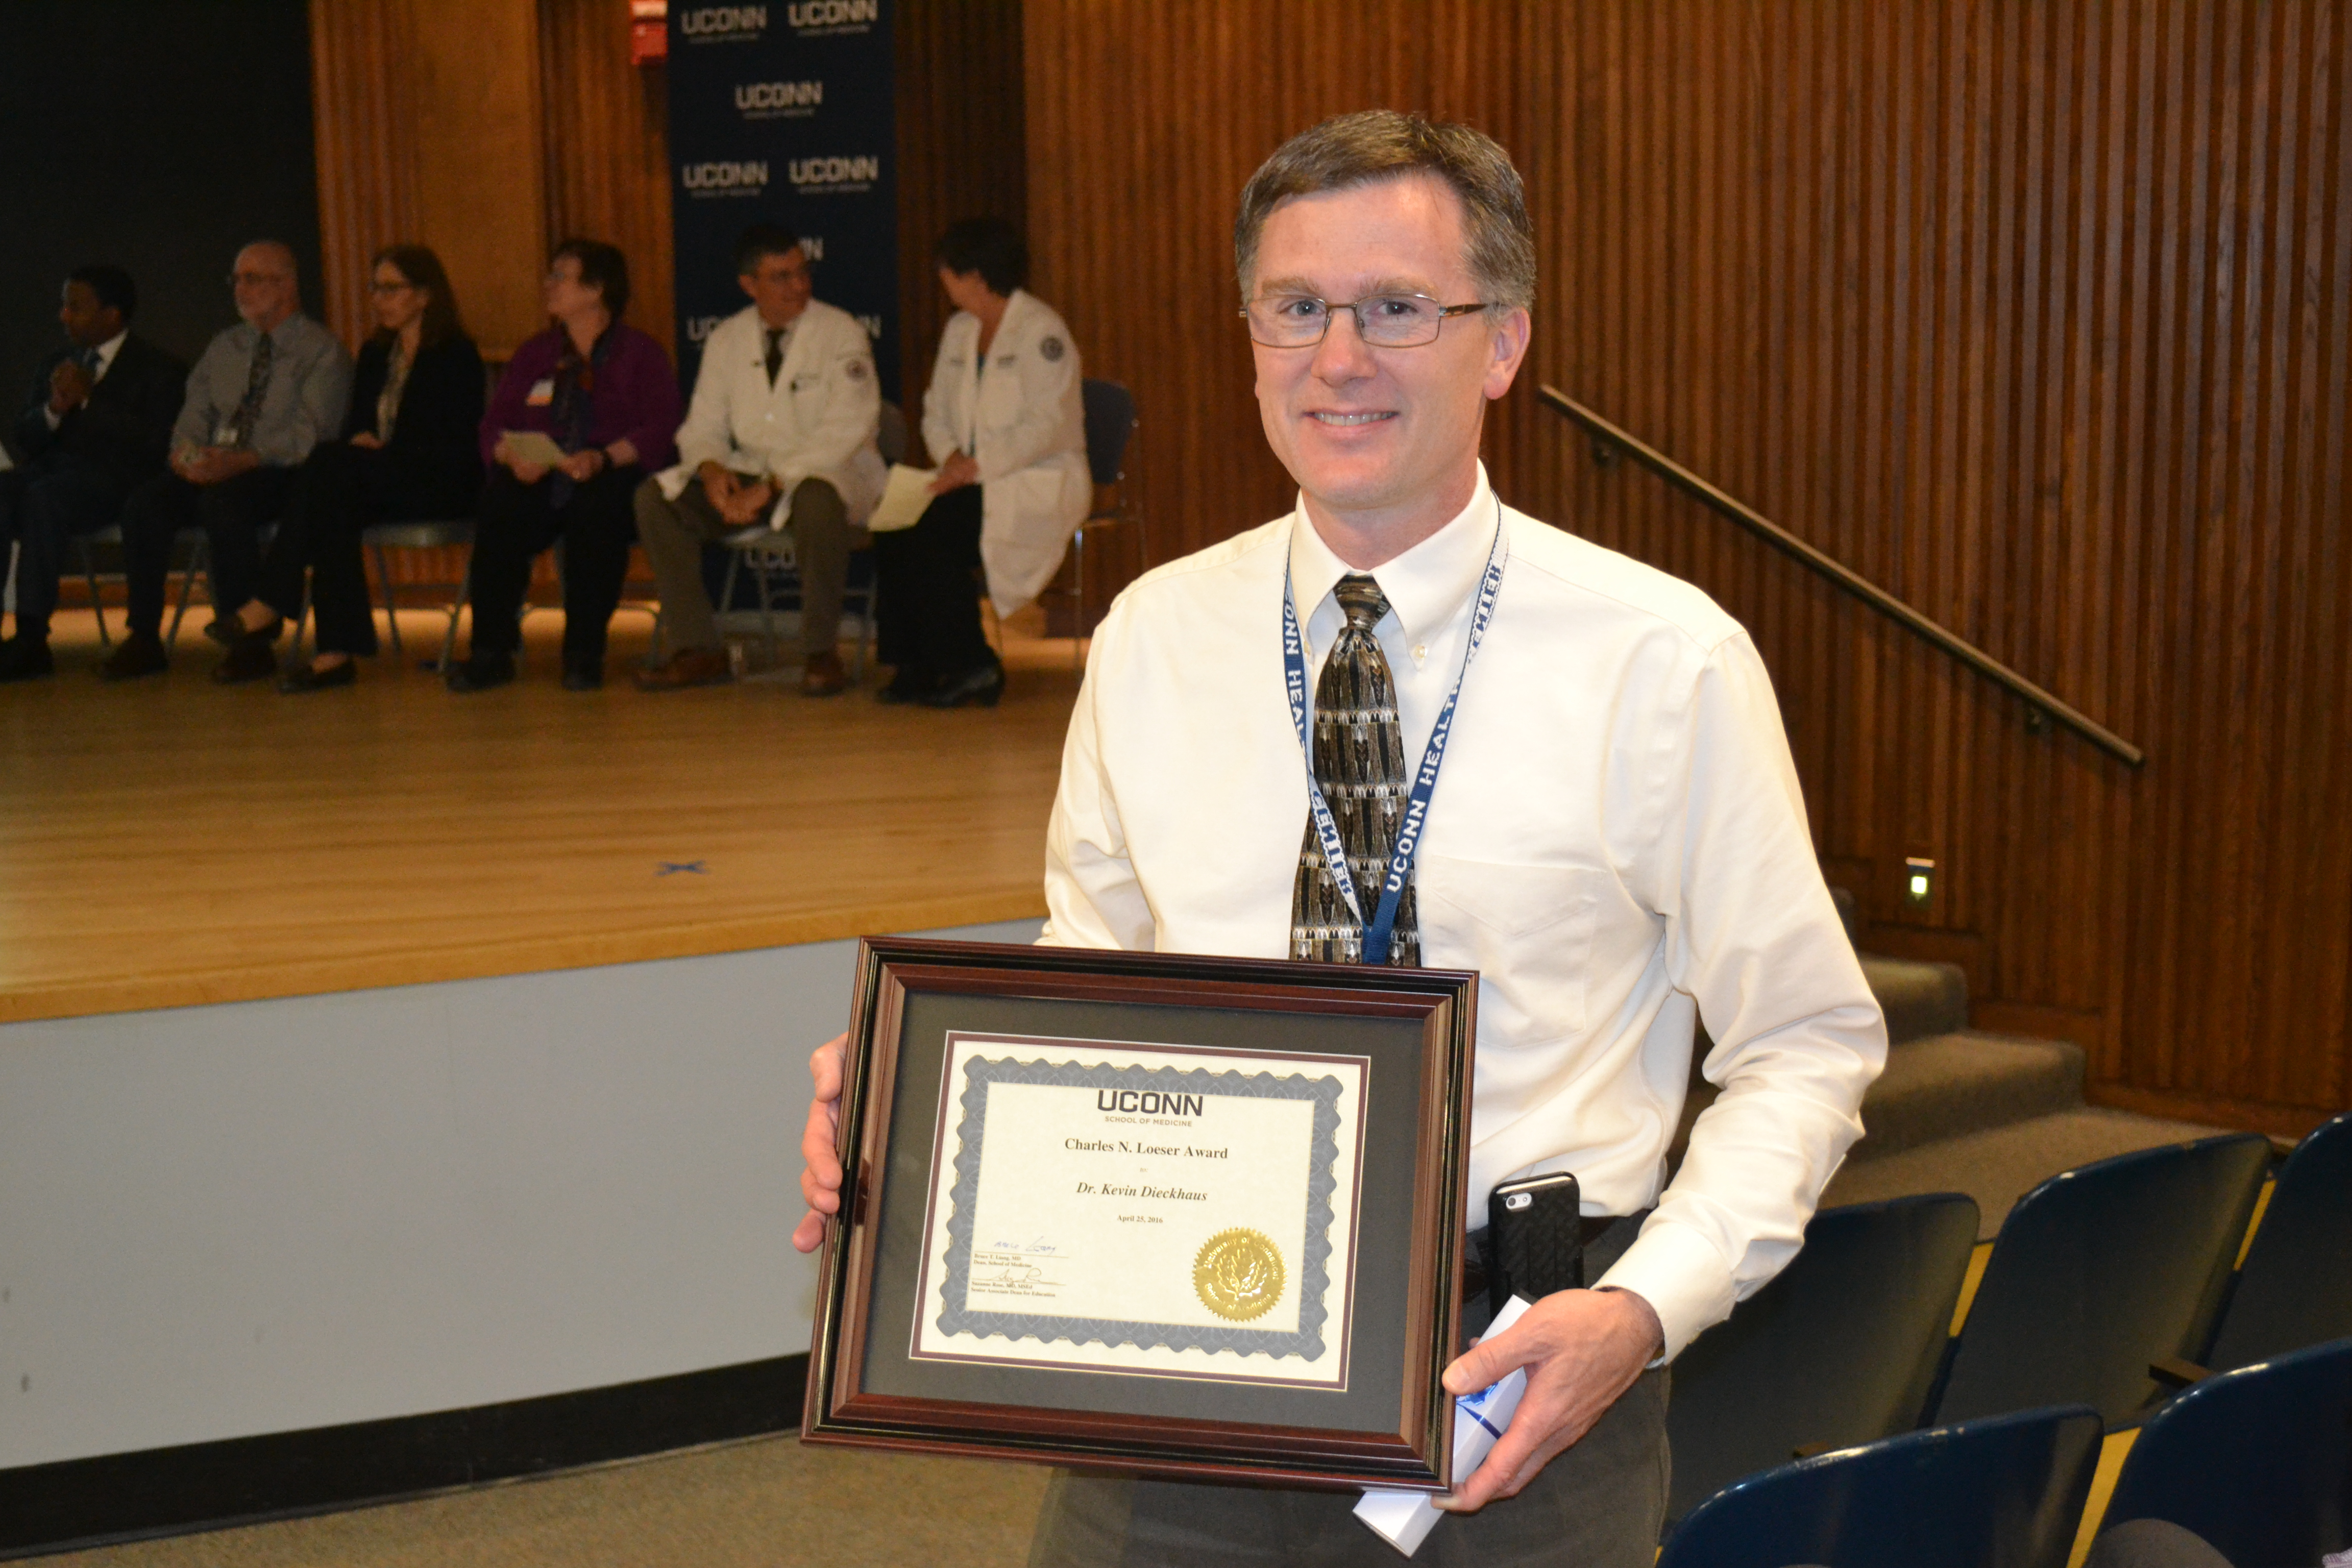 Chief of Infectious Diseases Dr. Kevin Dieckhaus won this year's Loeser Award during the School of Medicine's Spring Awards Night ceremony April 25, 2016. (Photo by Carolyn Pennington)